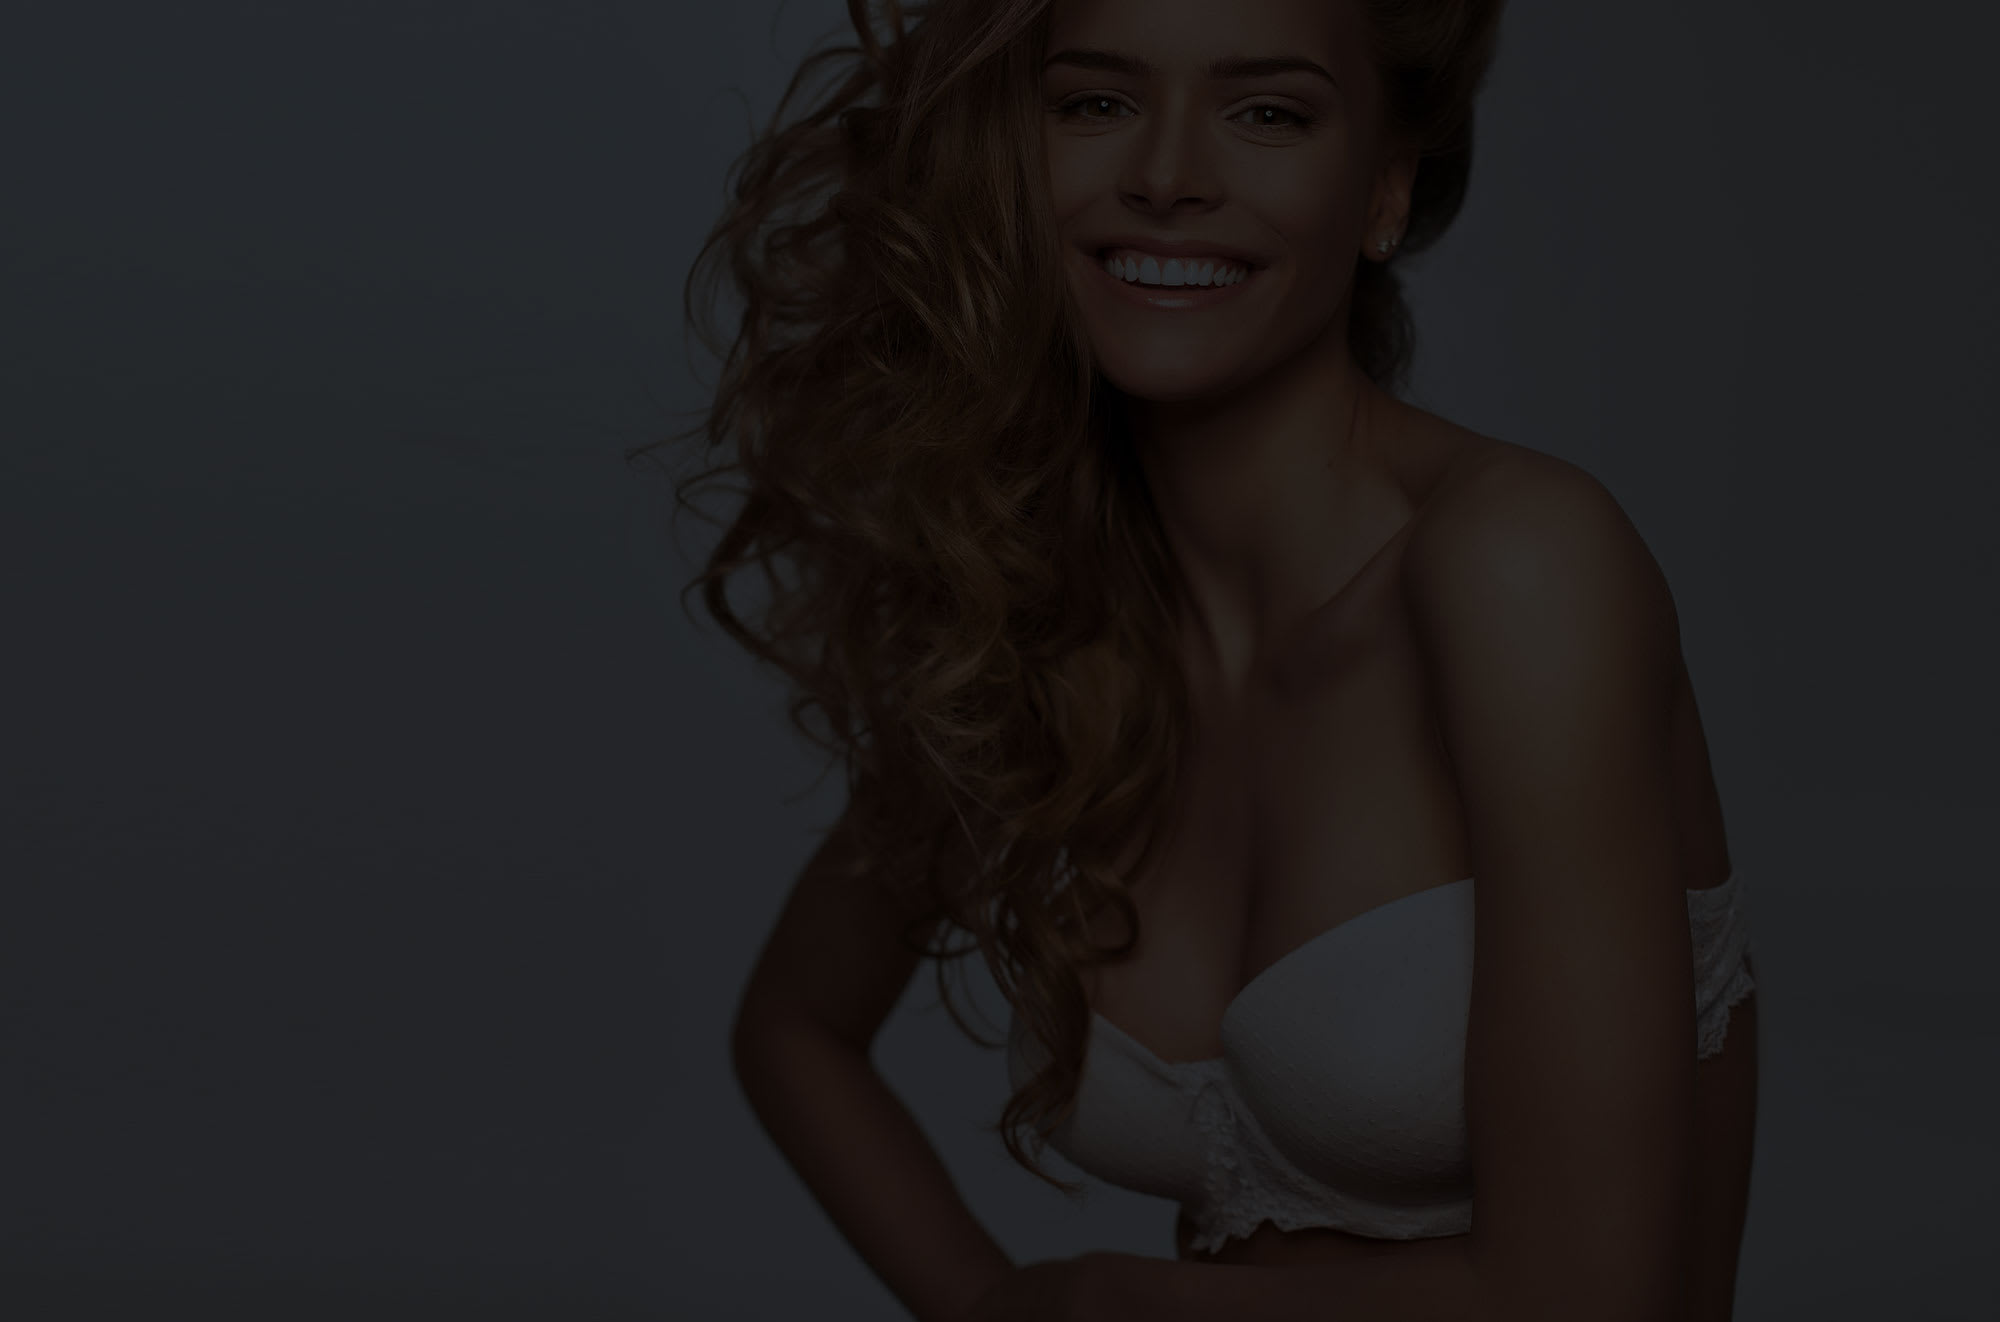 Woman with long blonde hair smiling in bra.